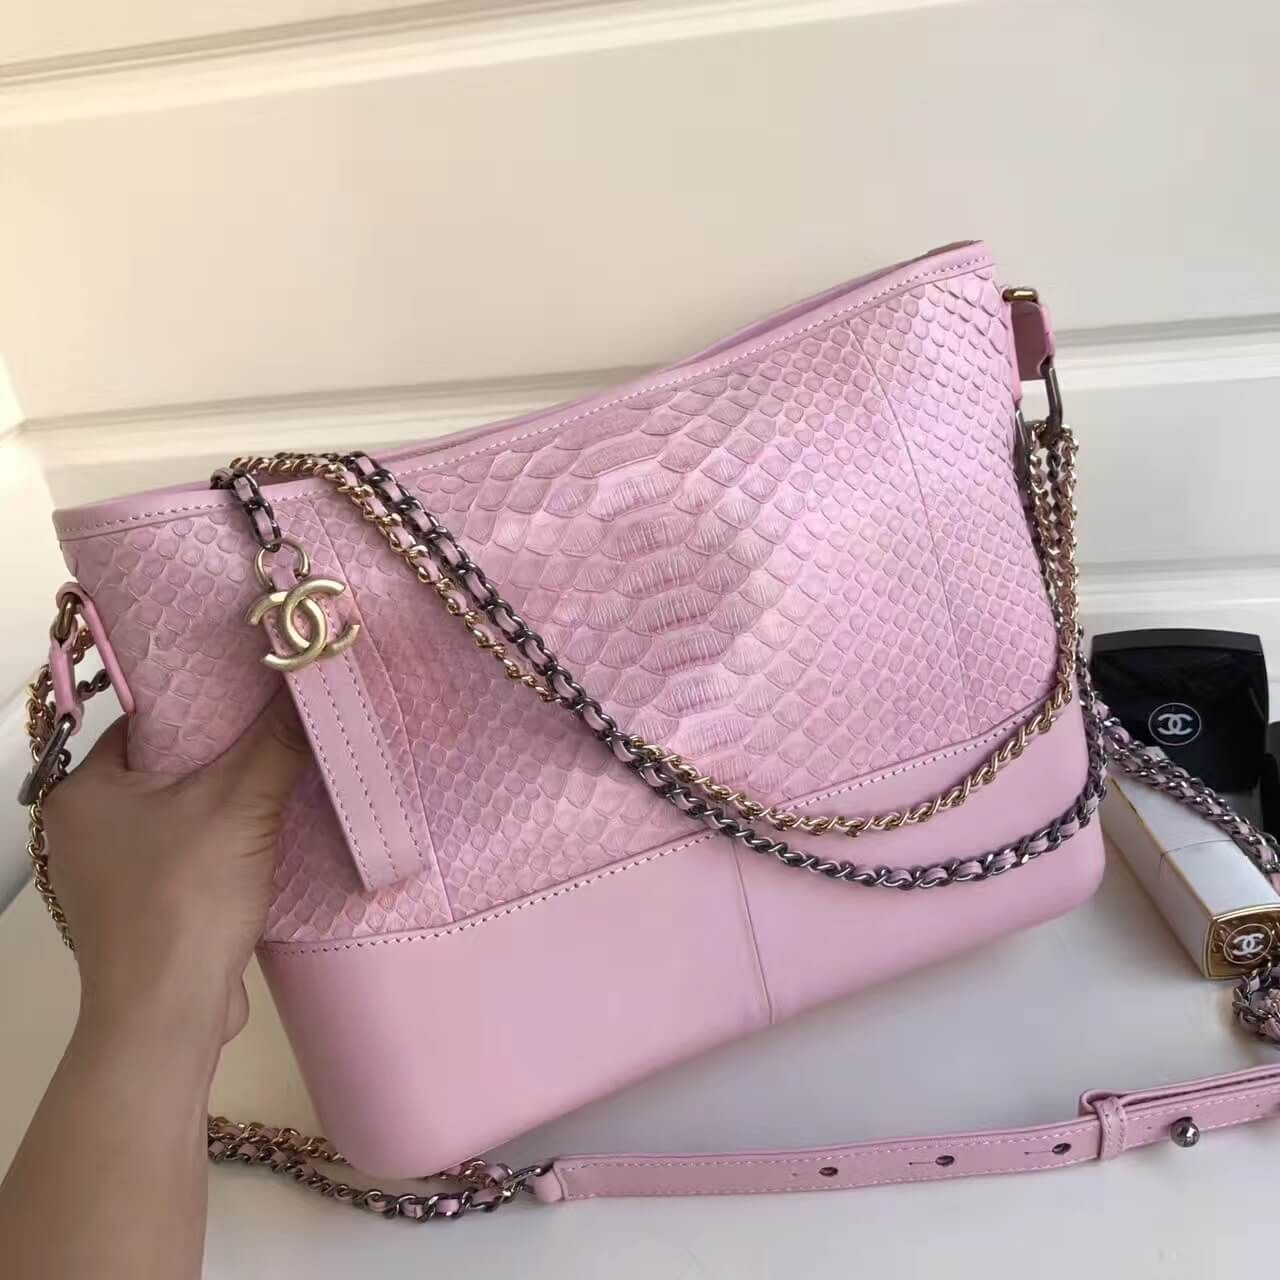 352c90eea049 Chanel Gabrielle Medium Hobo Bag in Python Leather   Calfskin A93824 Pink  2017